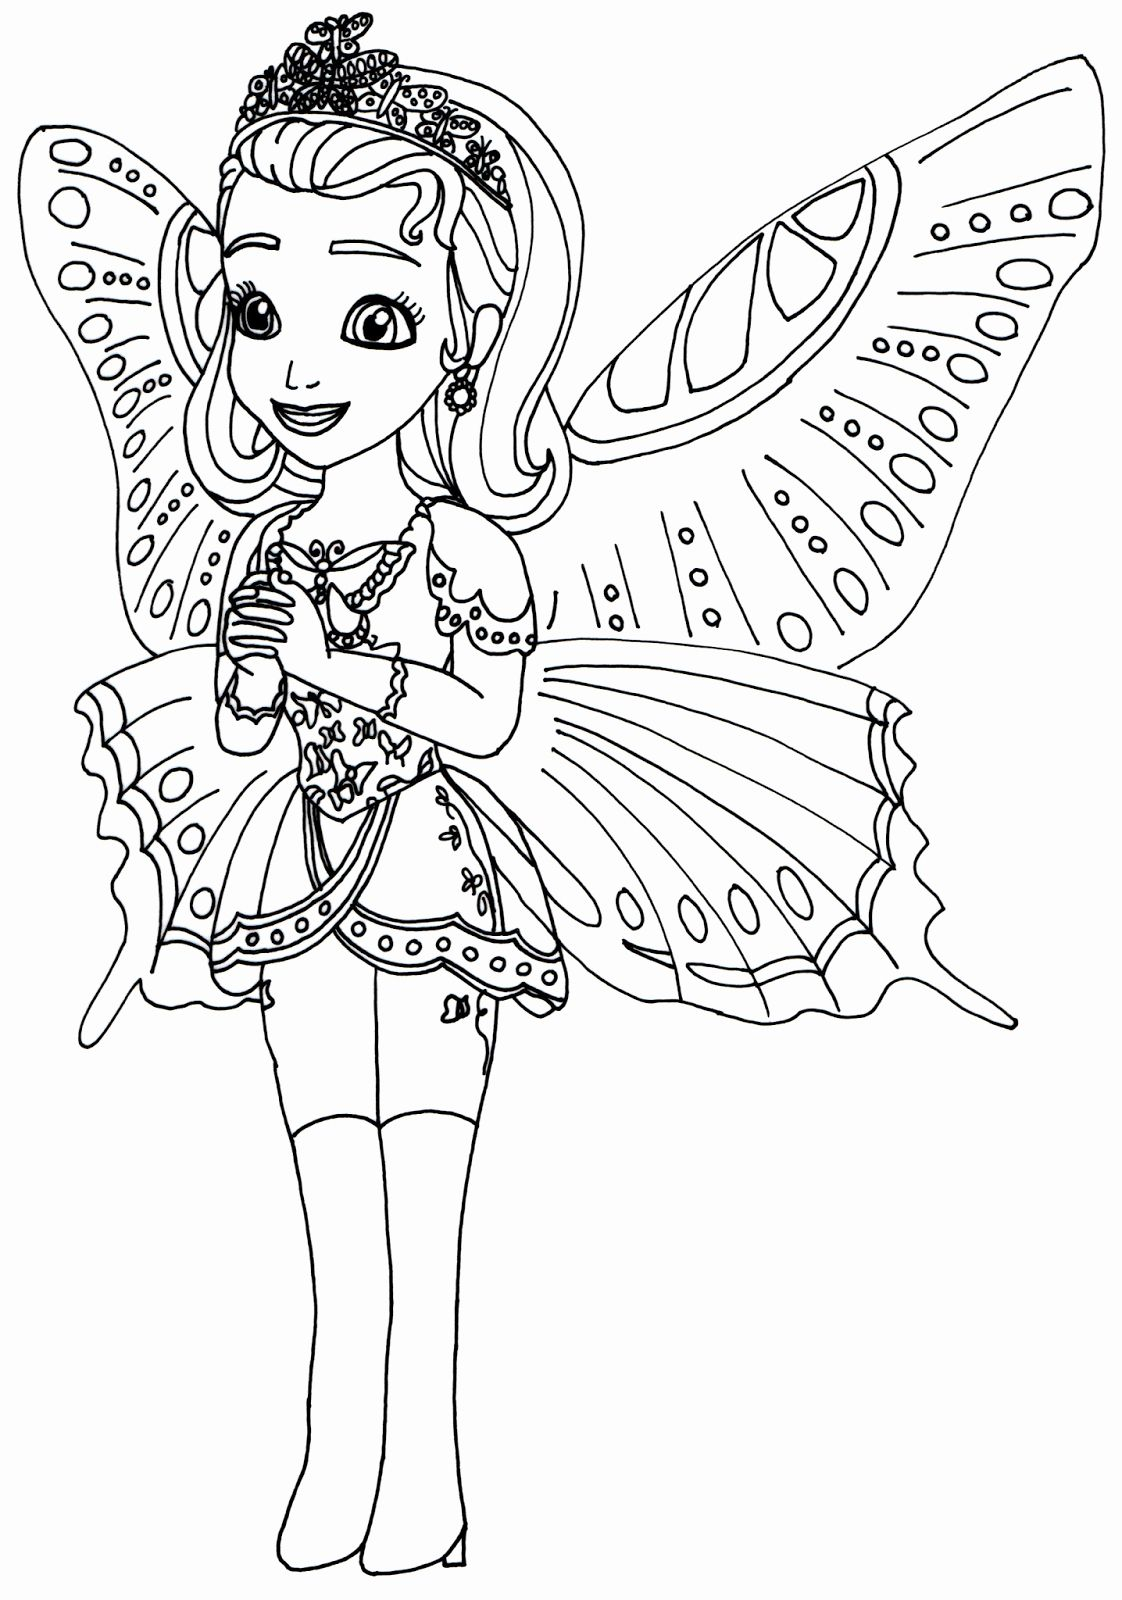 Sofia The First Coloring Book Unique 42 Sofia The First Mermaid Coloring Pages Free Printable Duygular